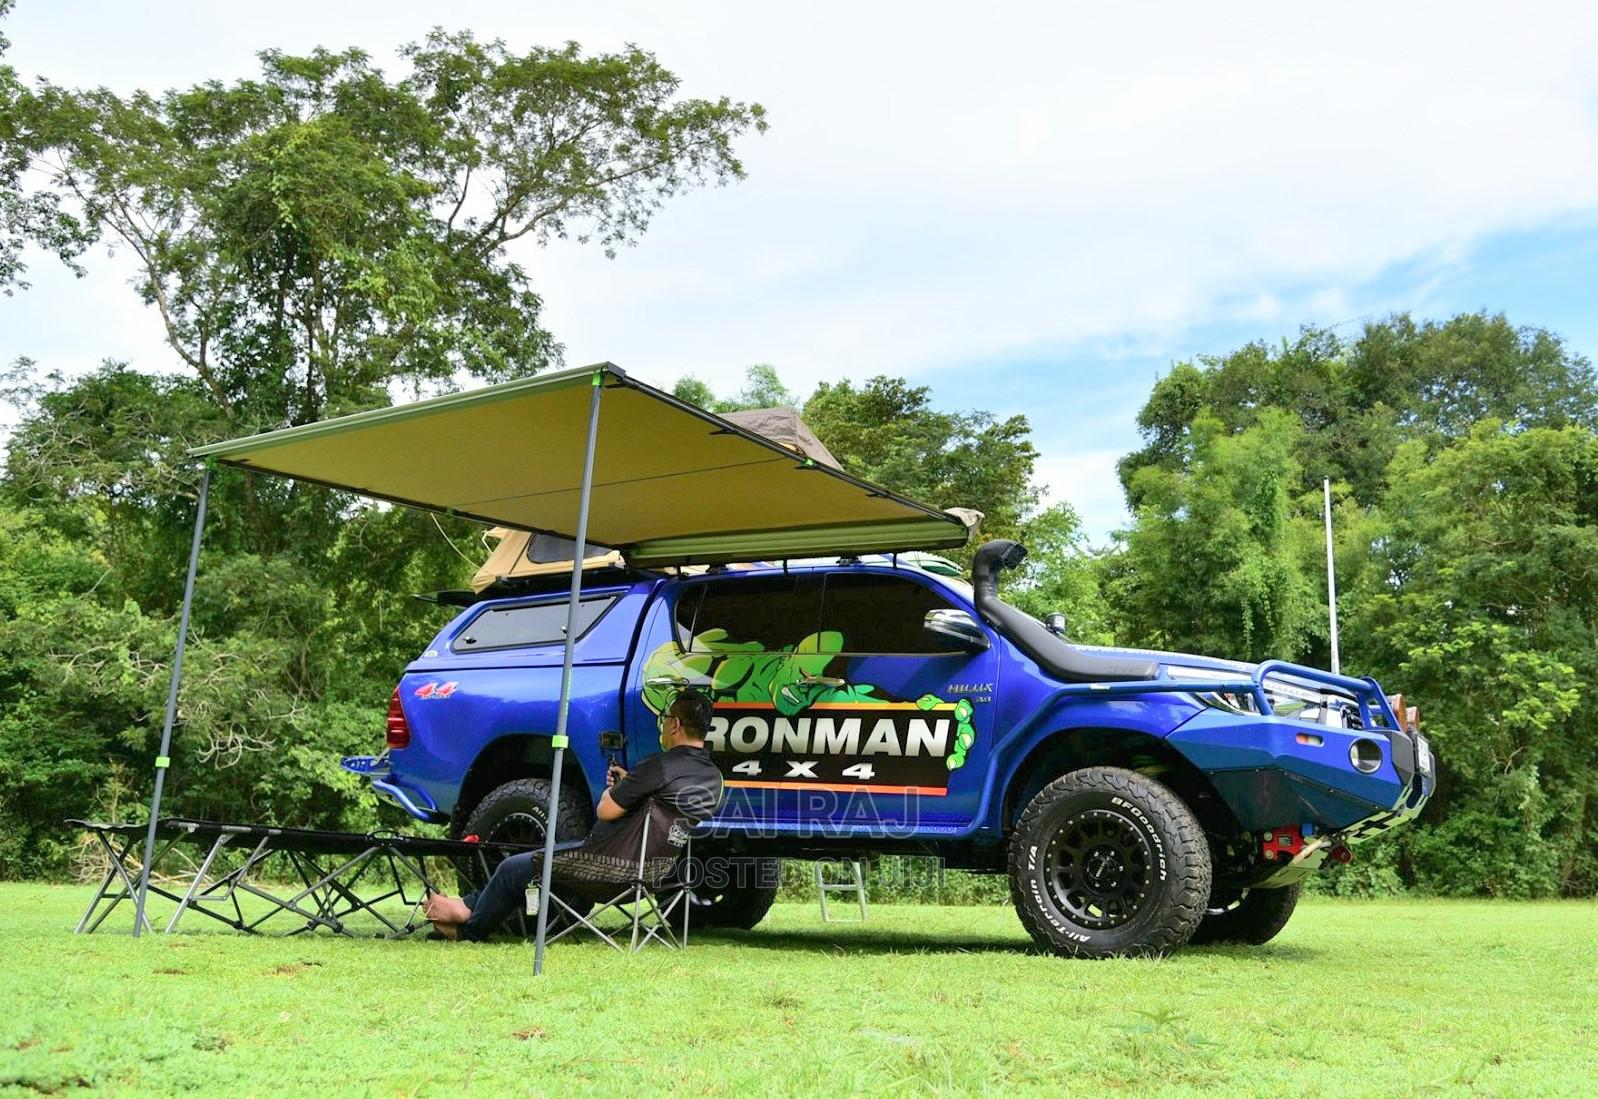 AWING - Ironman 4x4 Awnings | Camping Gear for sale in Baba Dogo, Nairobi, Kenya